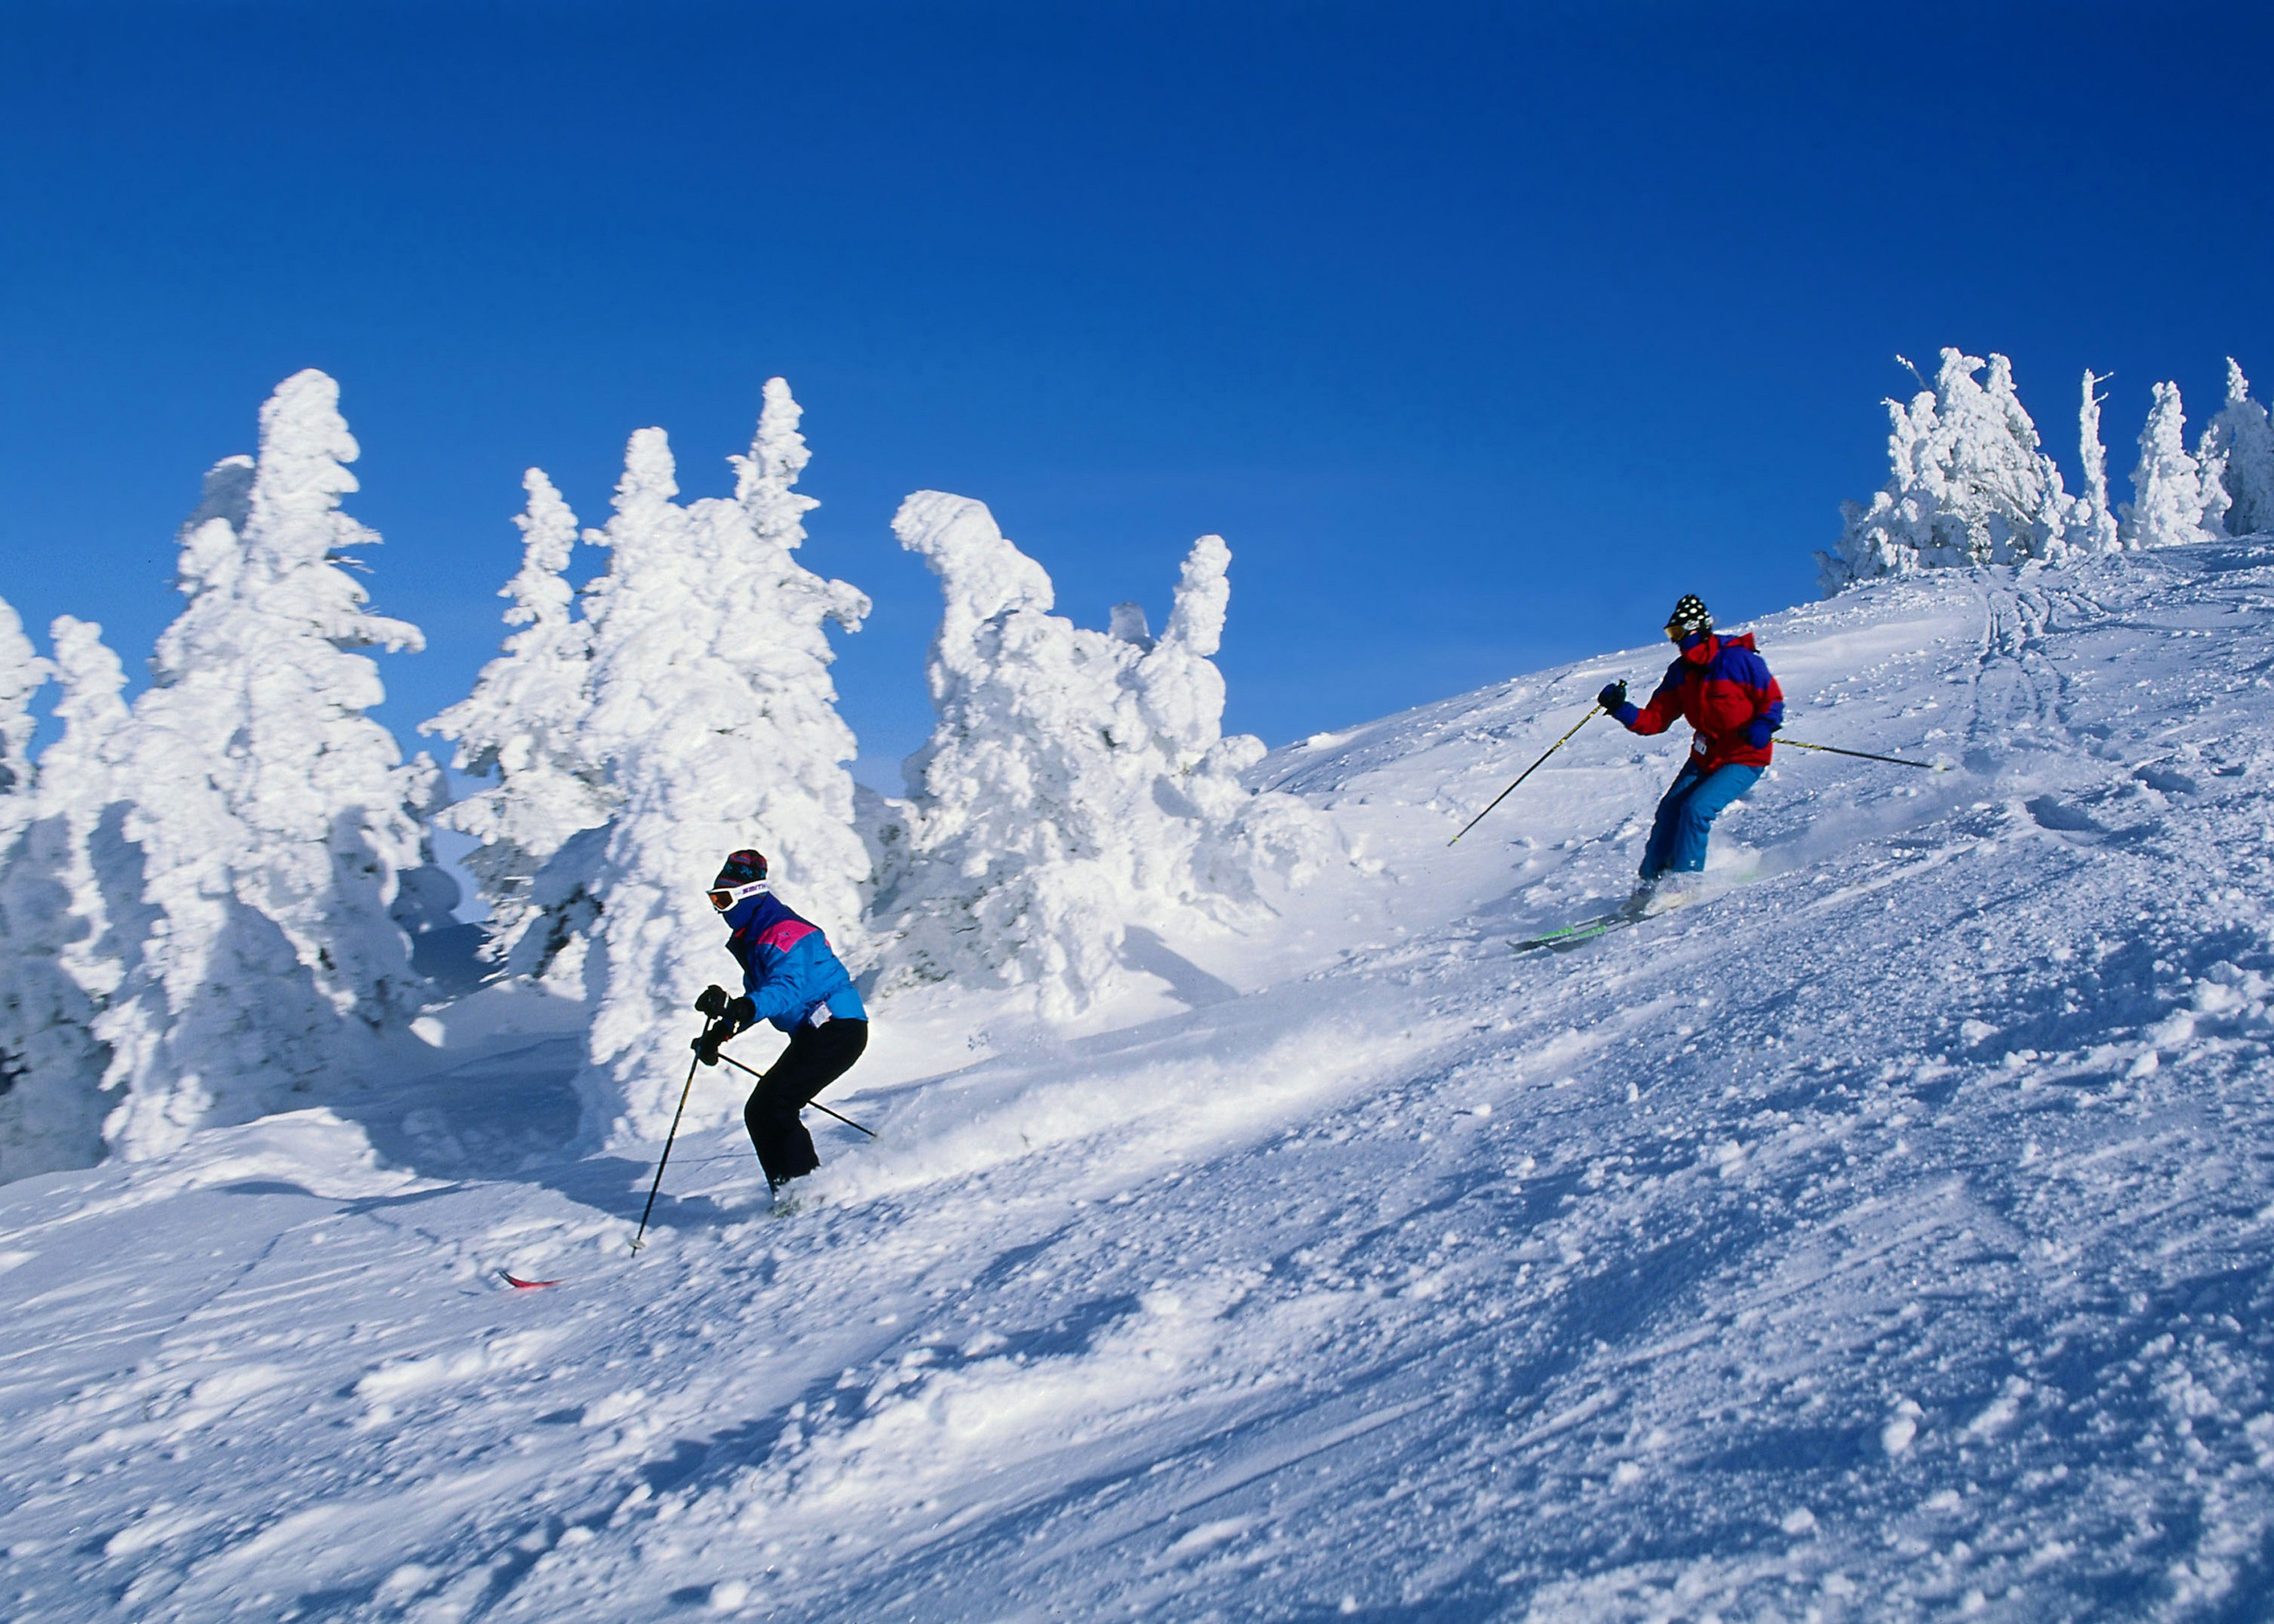 Thinking about where to go skiing this year? Try the Czech mountains, which offer quality slopes at affordable prices.